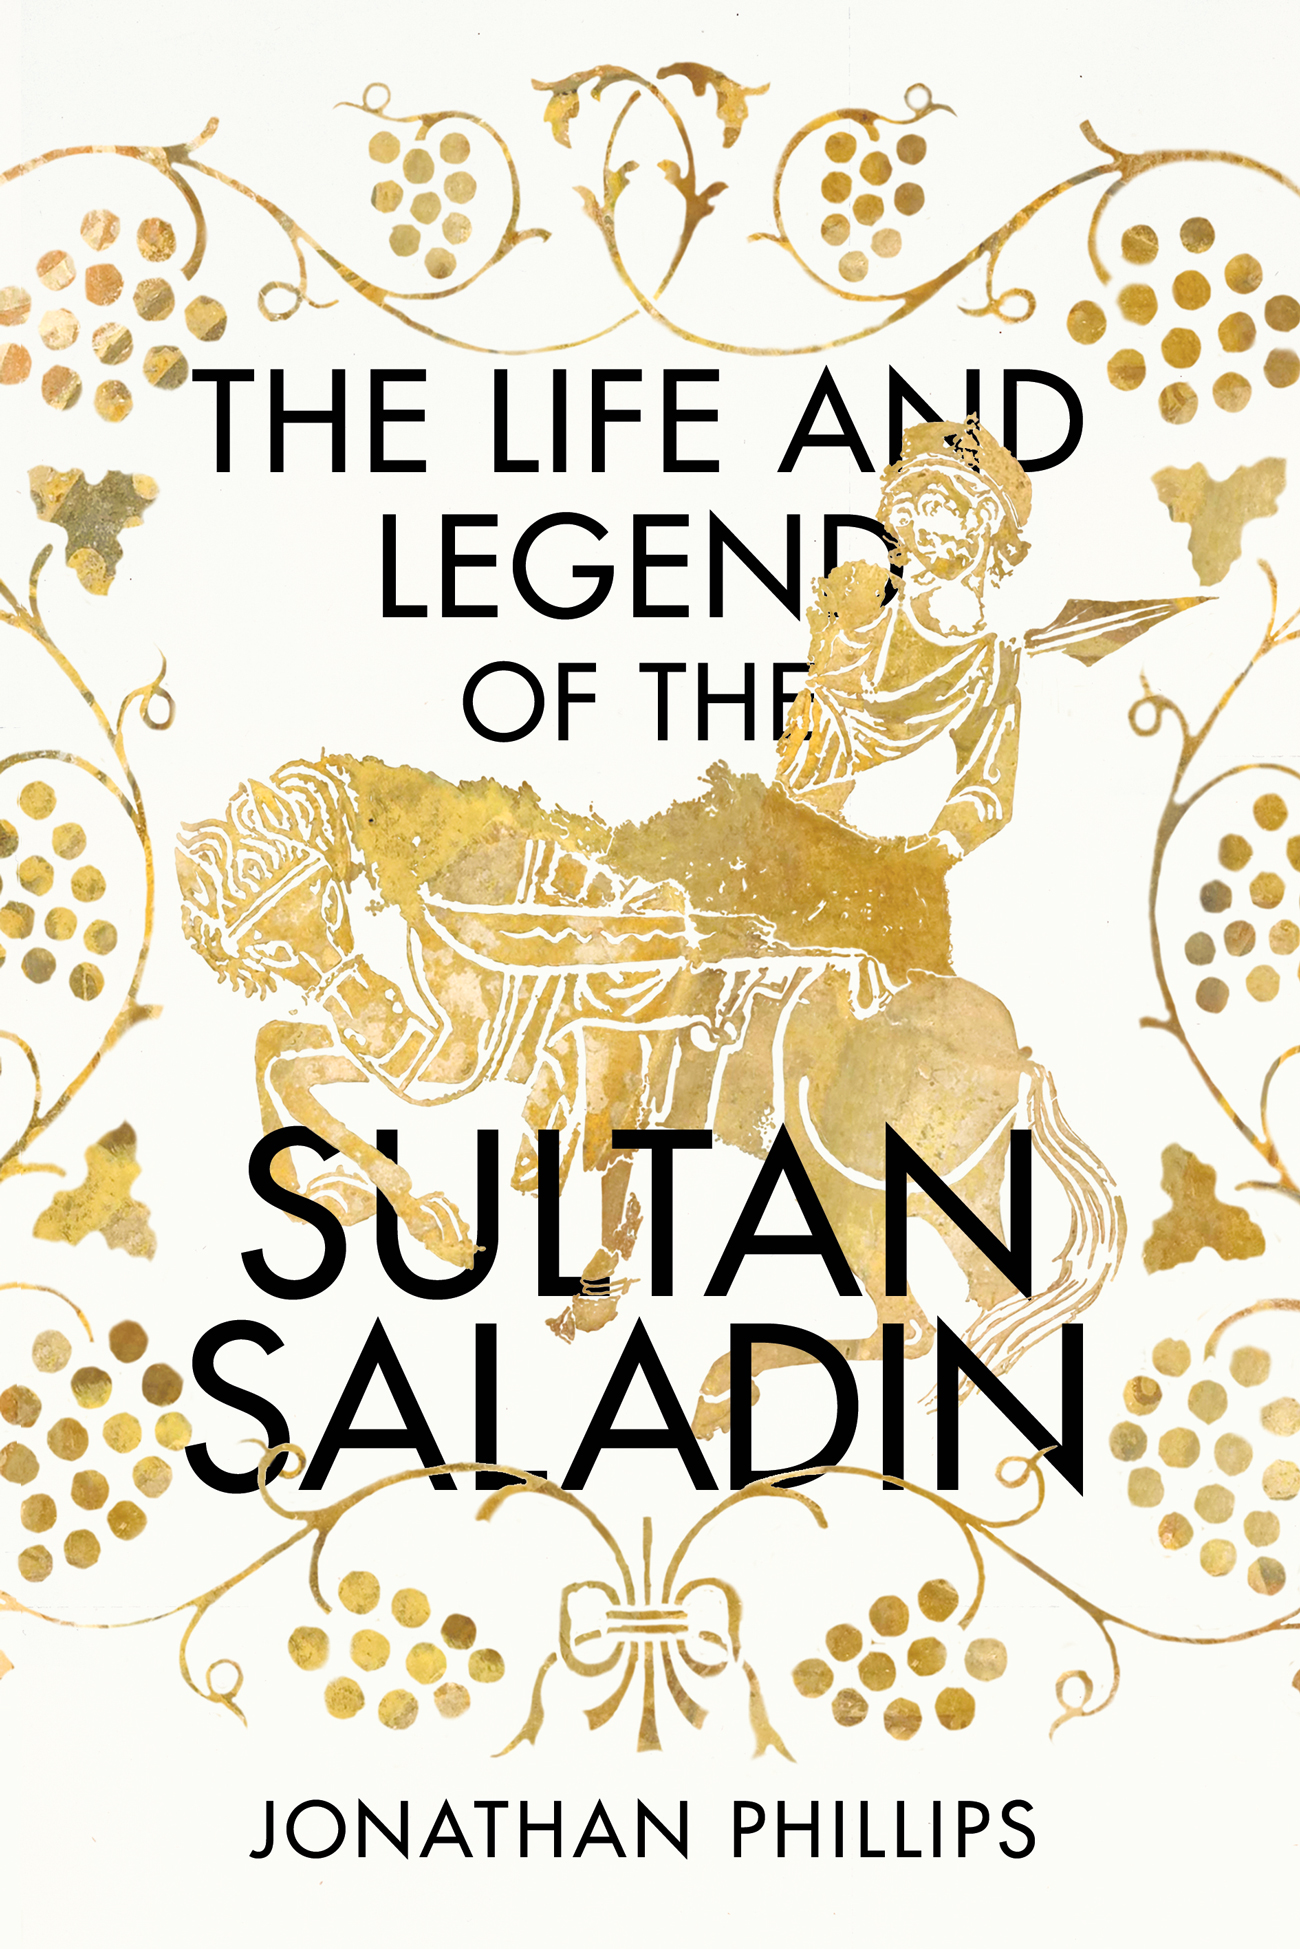 The Life and Legend of the Sultan Saladin: